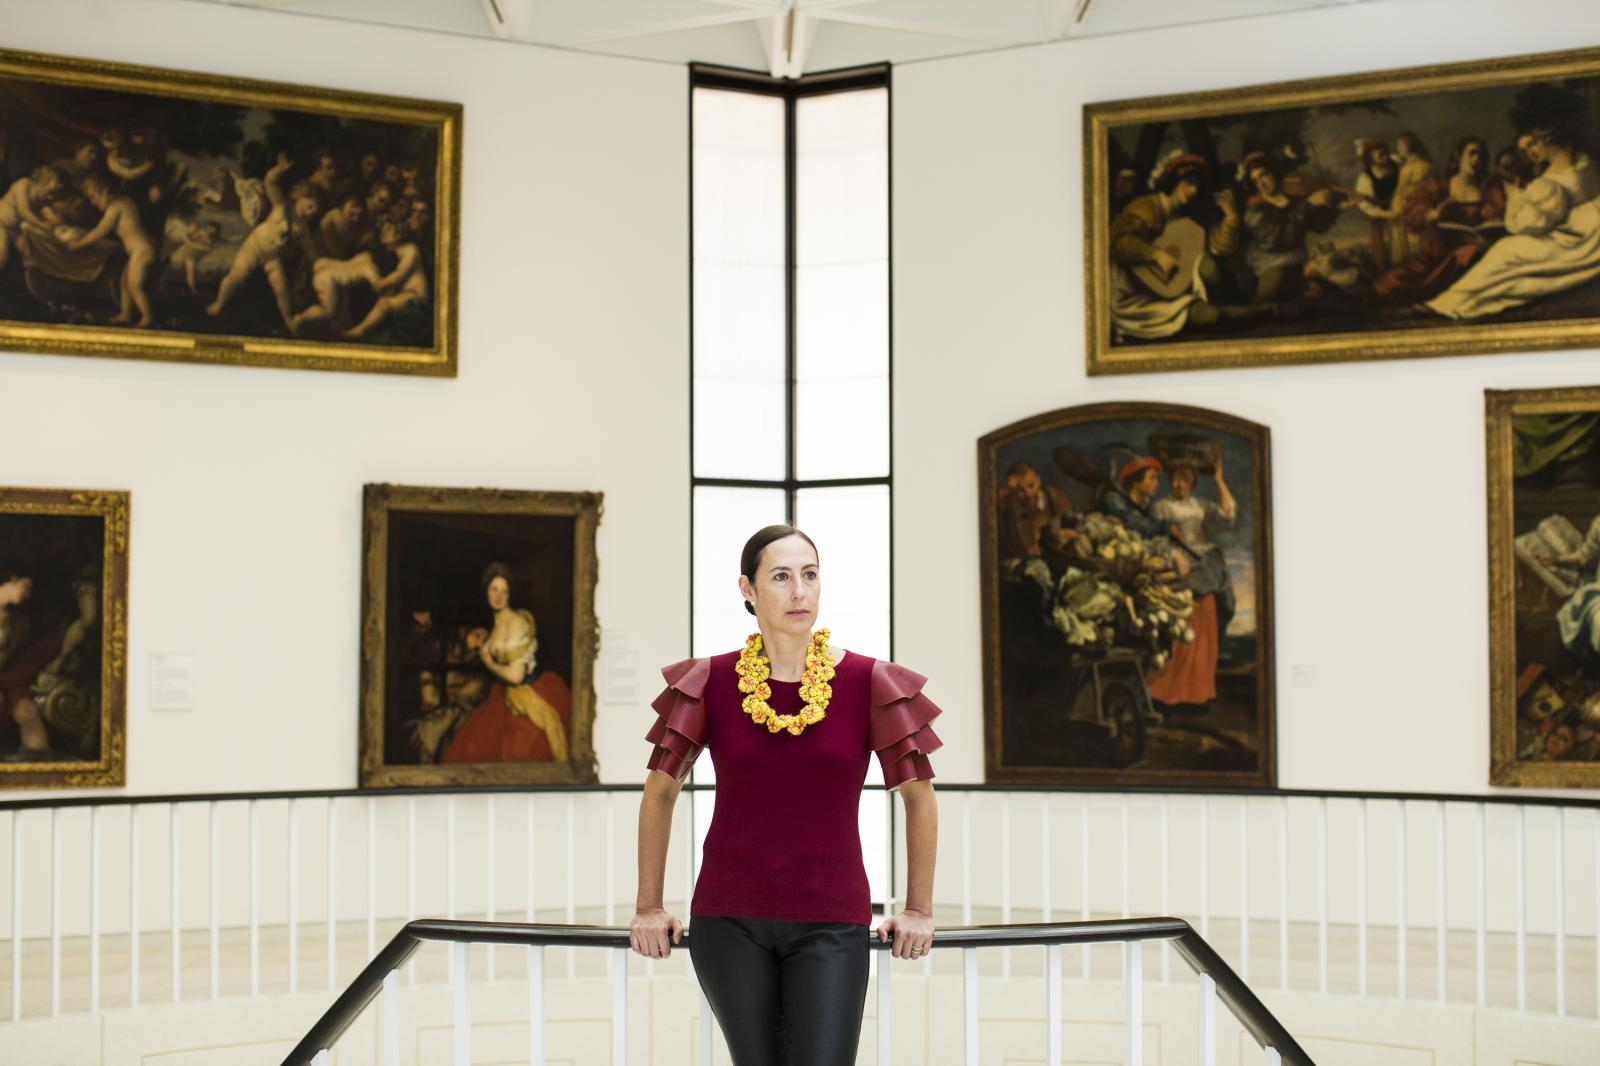 Alejandra Pe�a Gutierrez, executive director of the Museum of Art of Ponce, poses for a portrait at the institution on Feb. 21, 2018, in Ponce, P.R. The museum did not suffer major damages after hurricane Maria landed on Sep. 20, 2017, but it was one of the few museums prepared with a power generator to maintain their collection safe. According to Pe�a they struggled to access fuel for the generator after the storm as there was gas shortage throughout the island. The museum has the biggest collection of European art in the Caribbean.